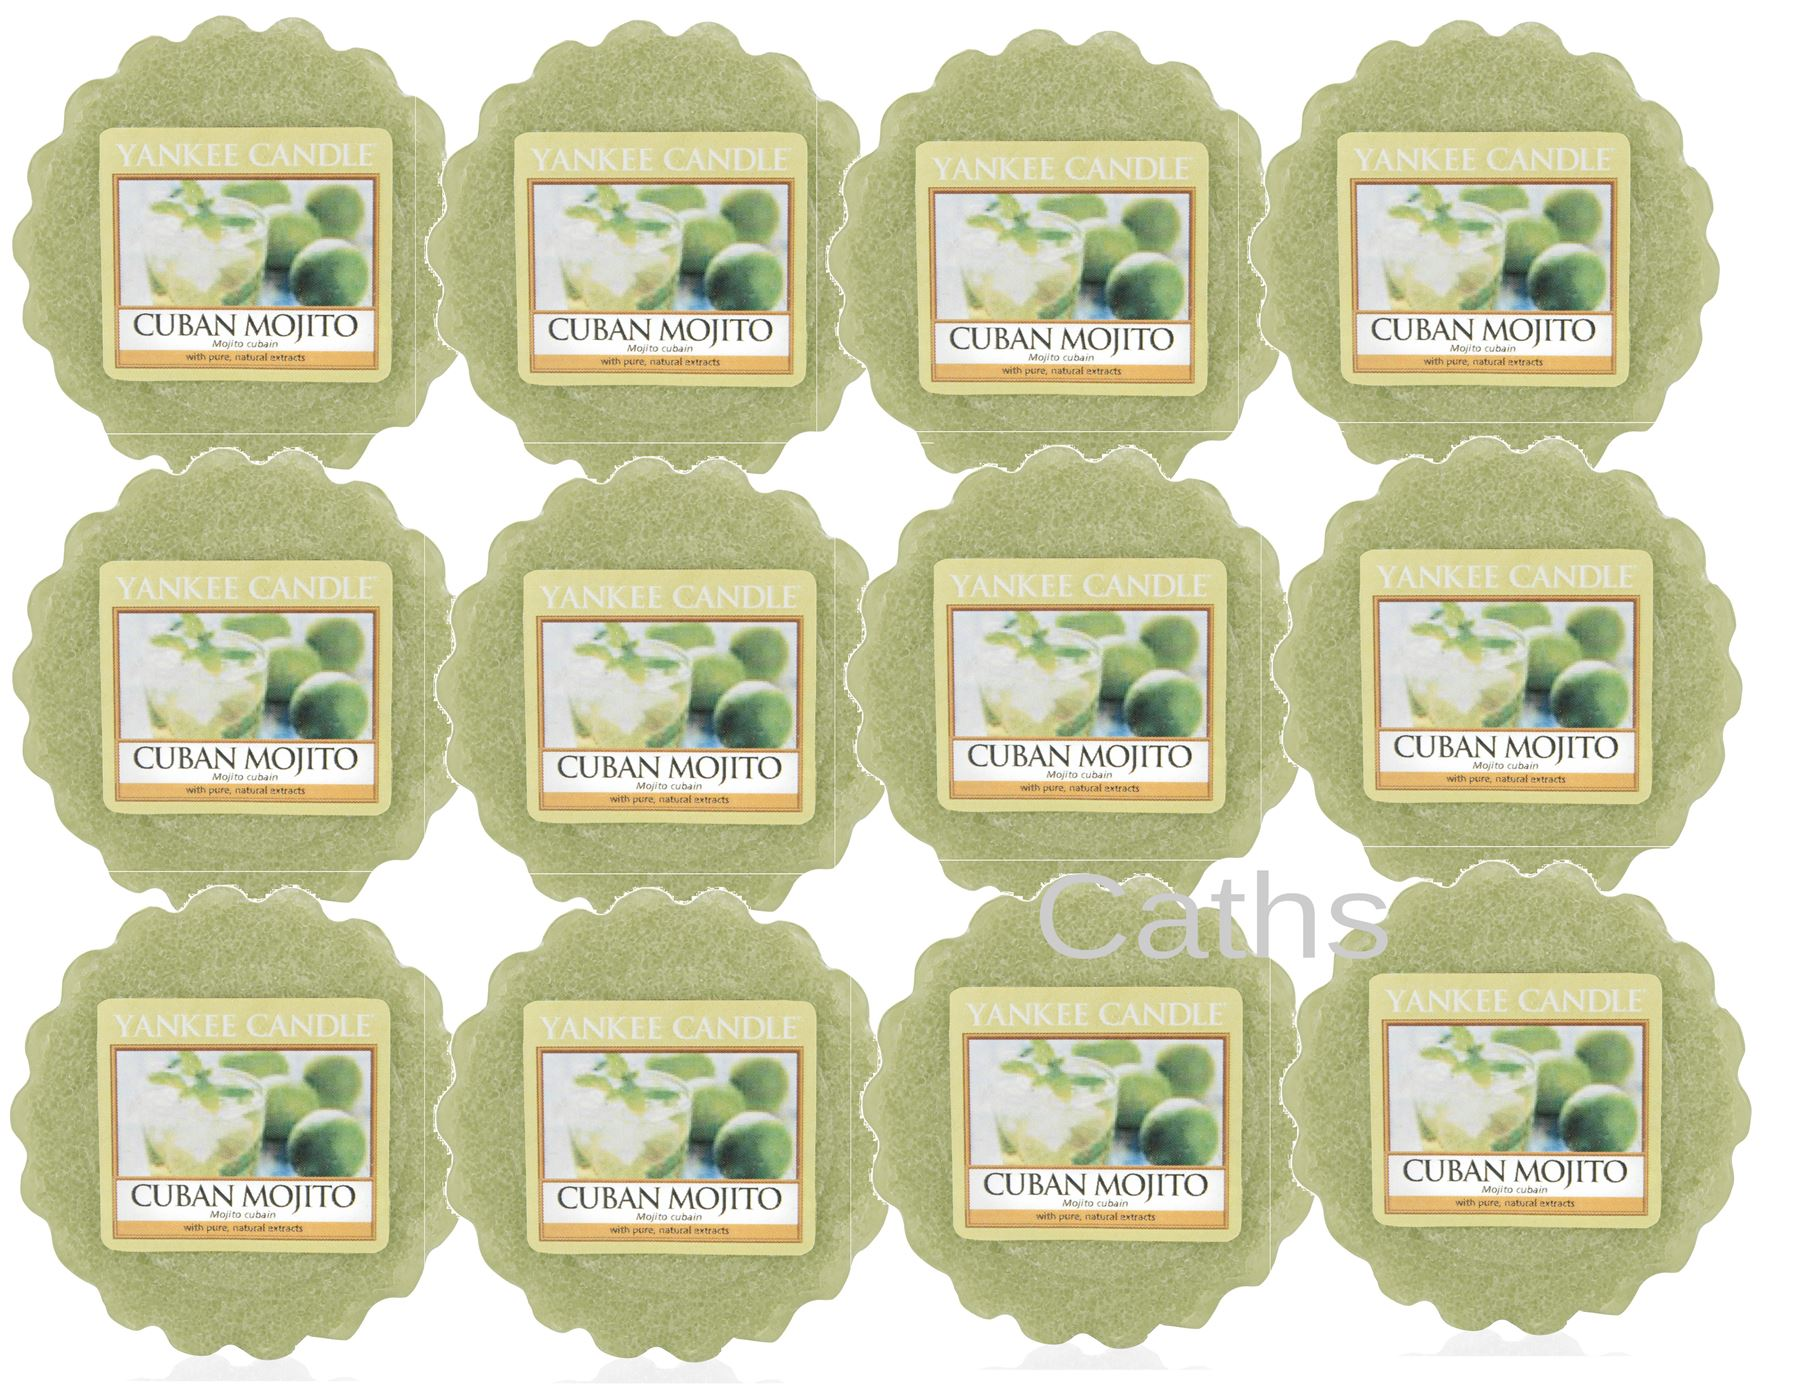 Yankee-Candle-Wax-Tart-Melts-pack-of-12-Select-Your-Fragrance